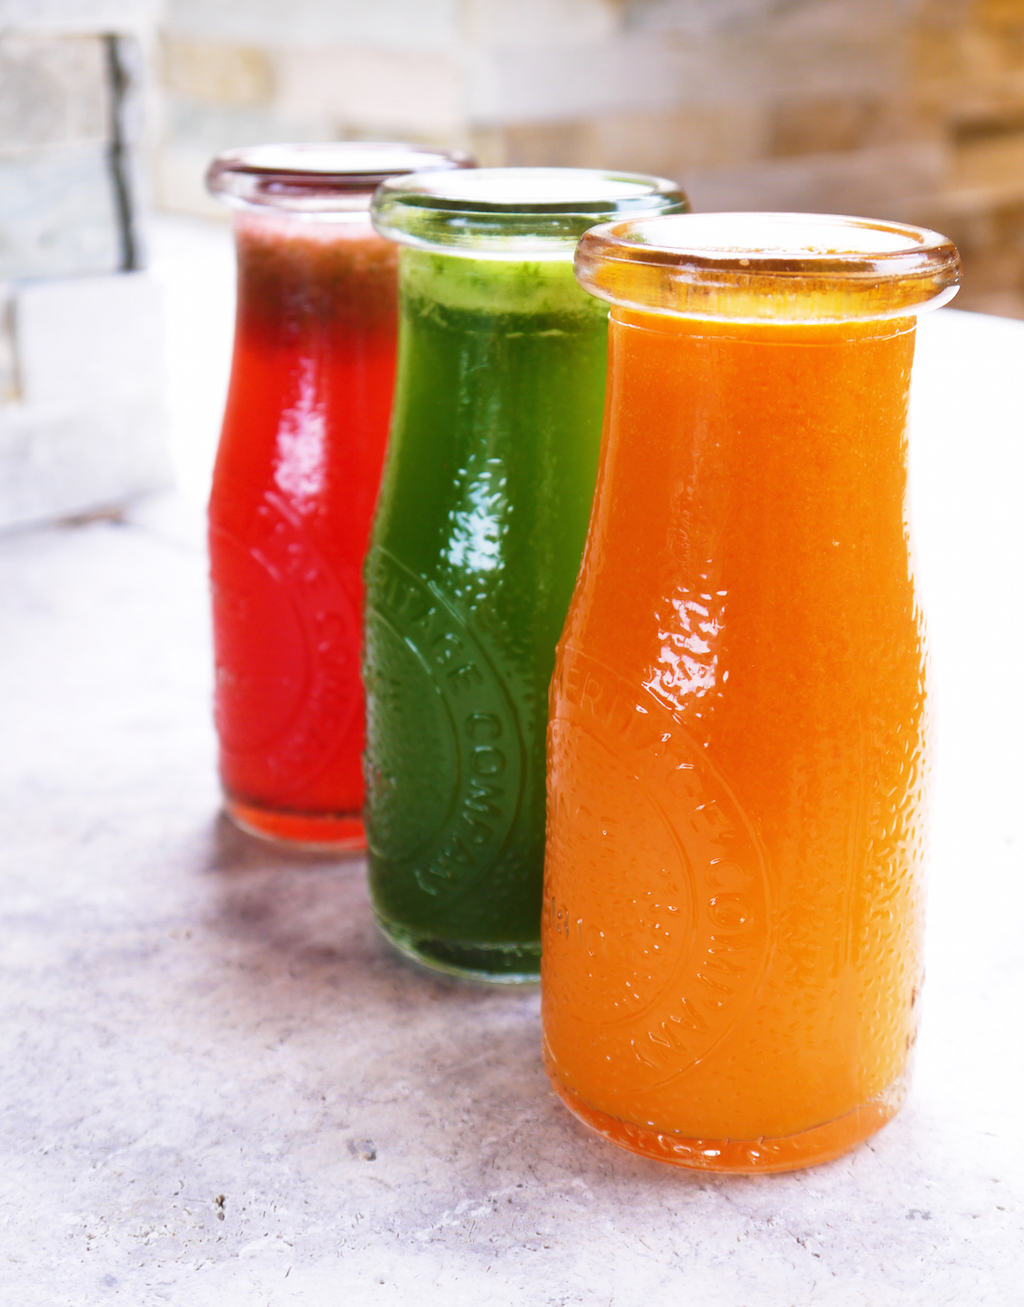 Summer Brunch: Build Your Own Juice Bar